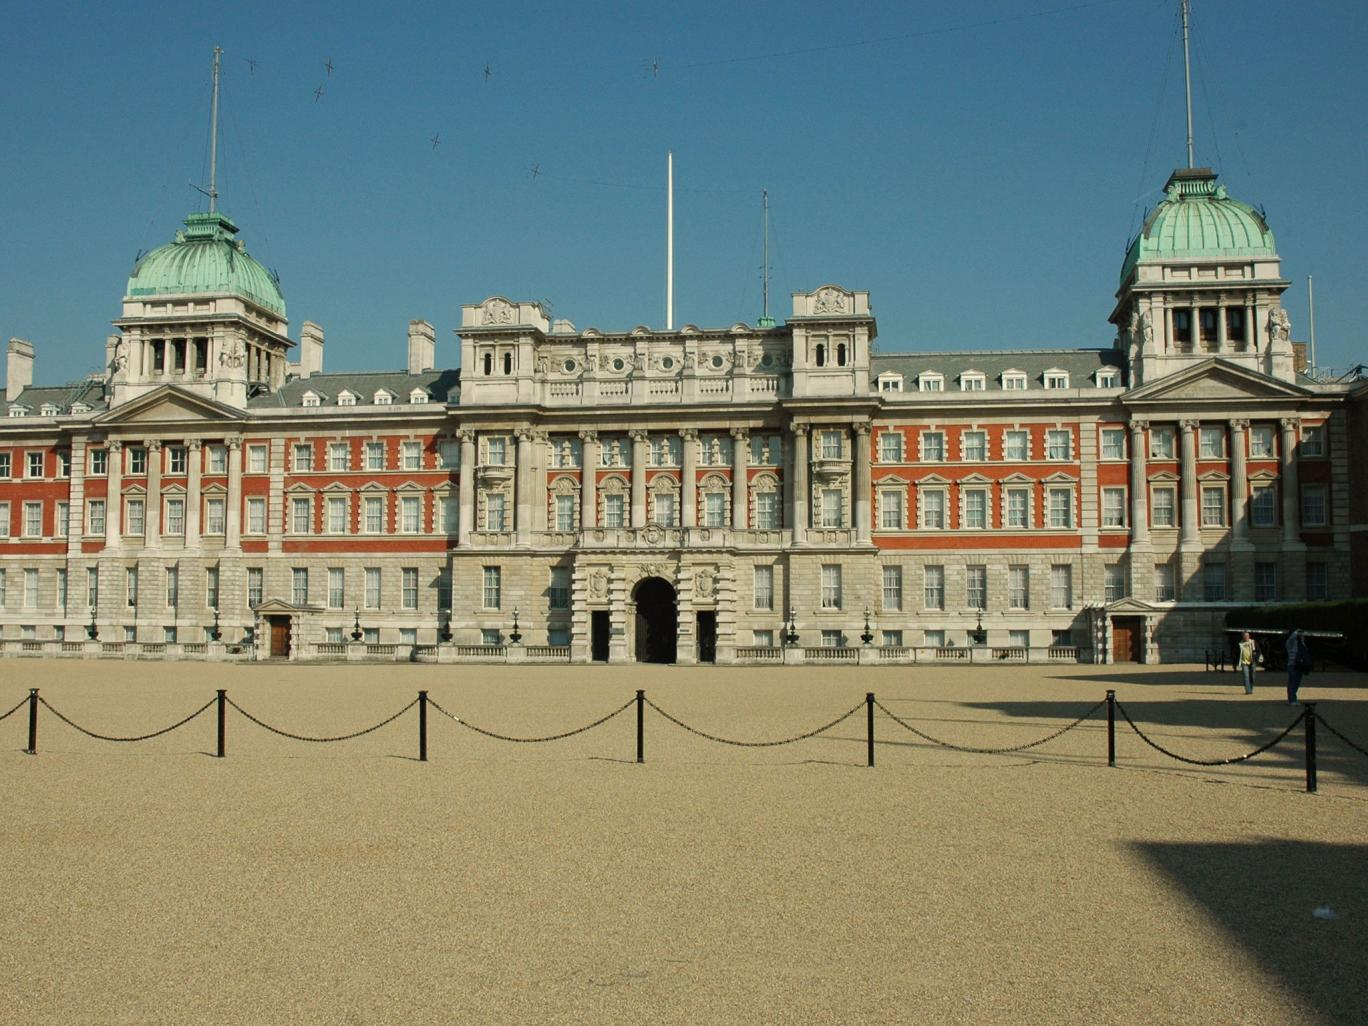 admiralty house - photo #11